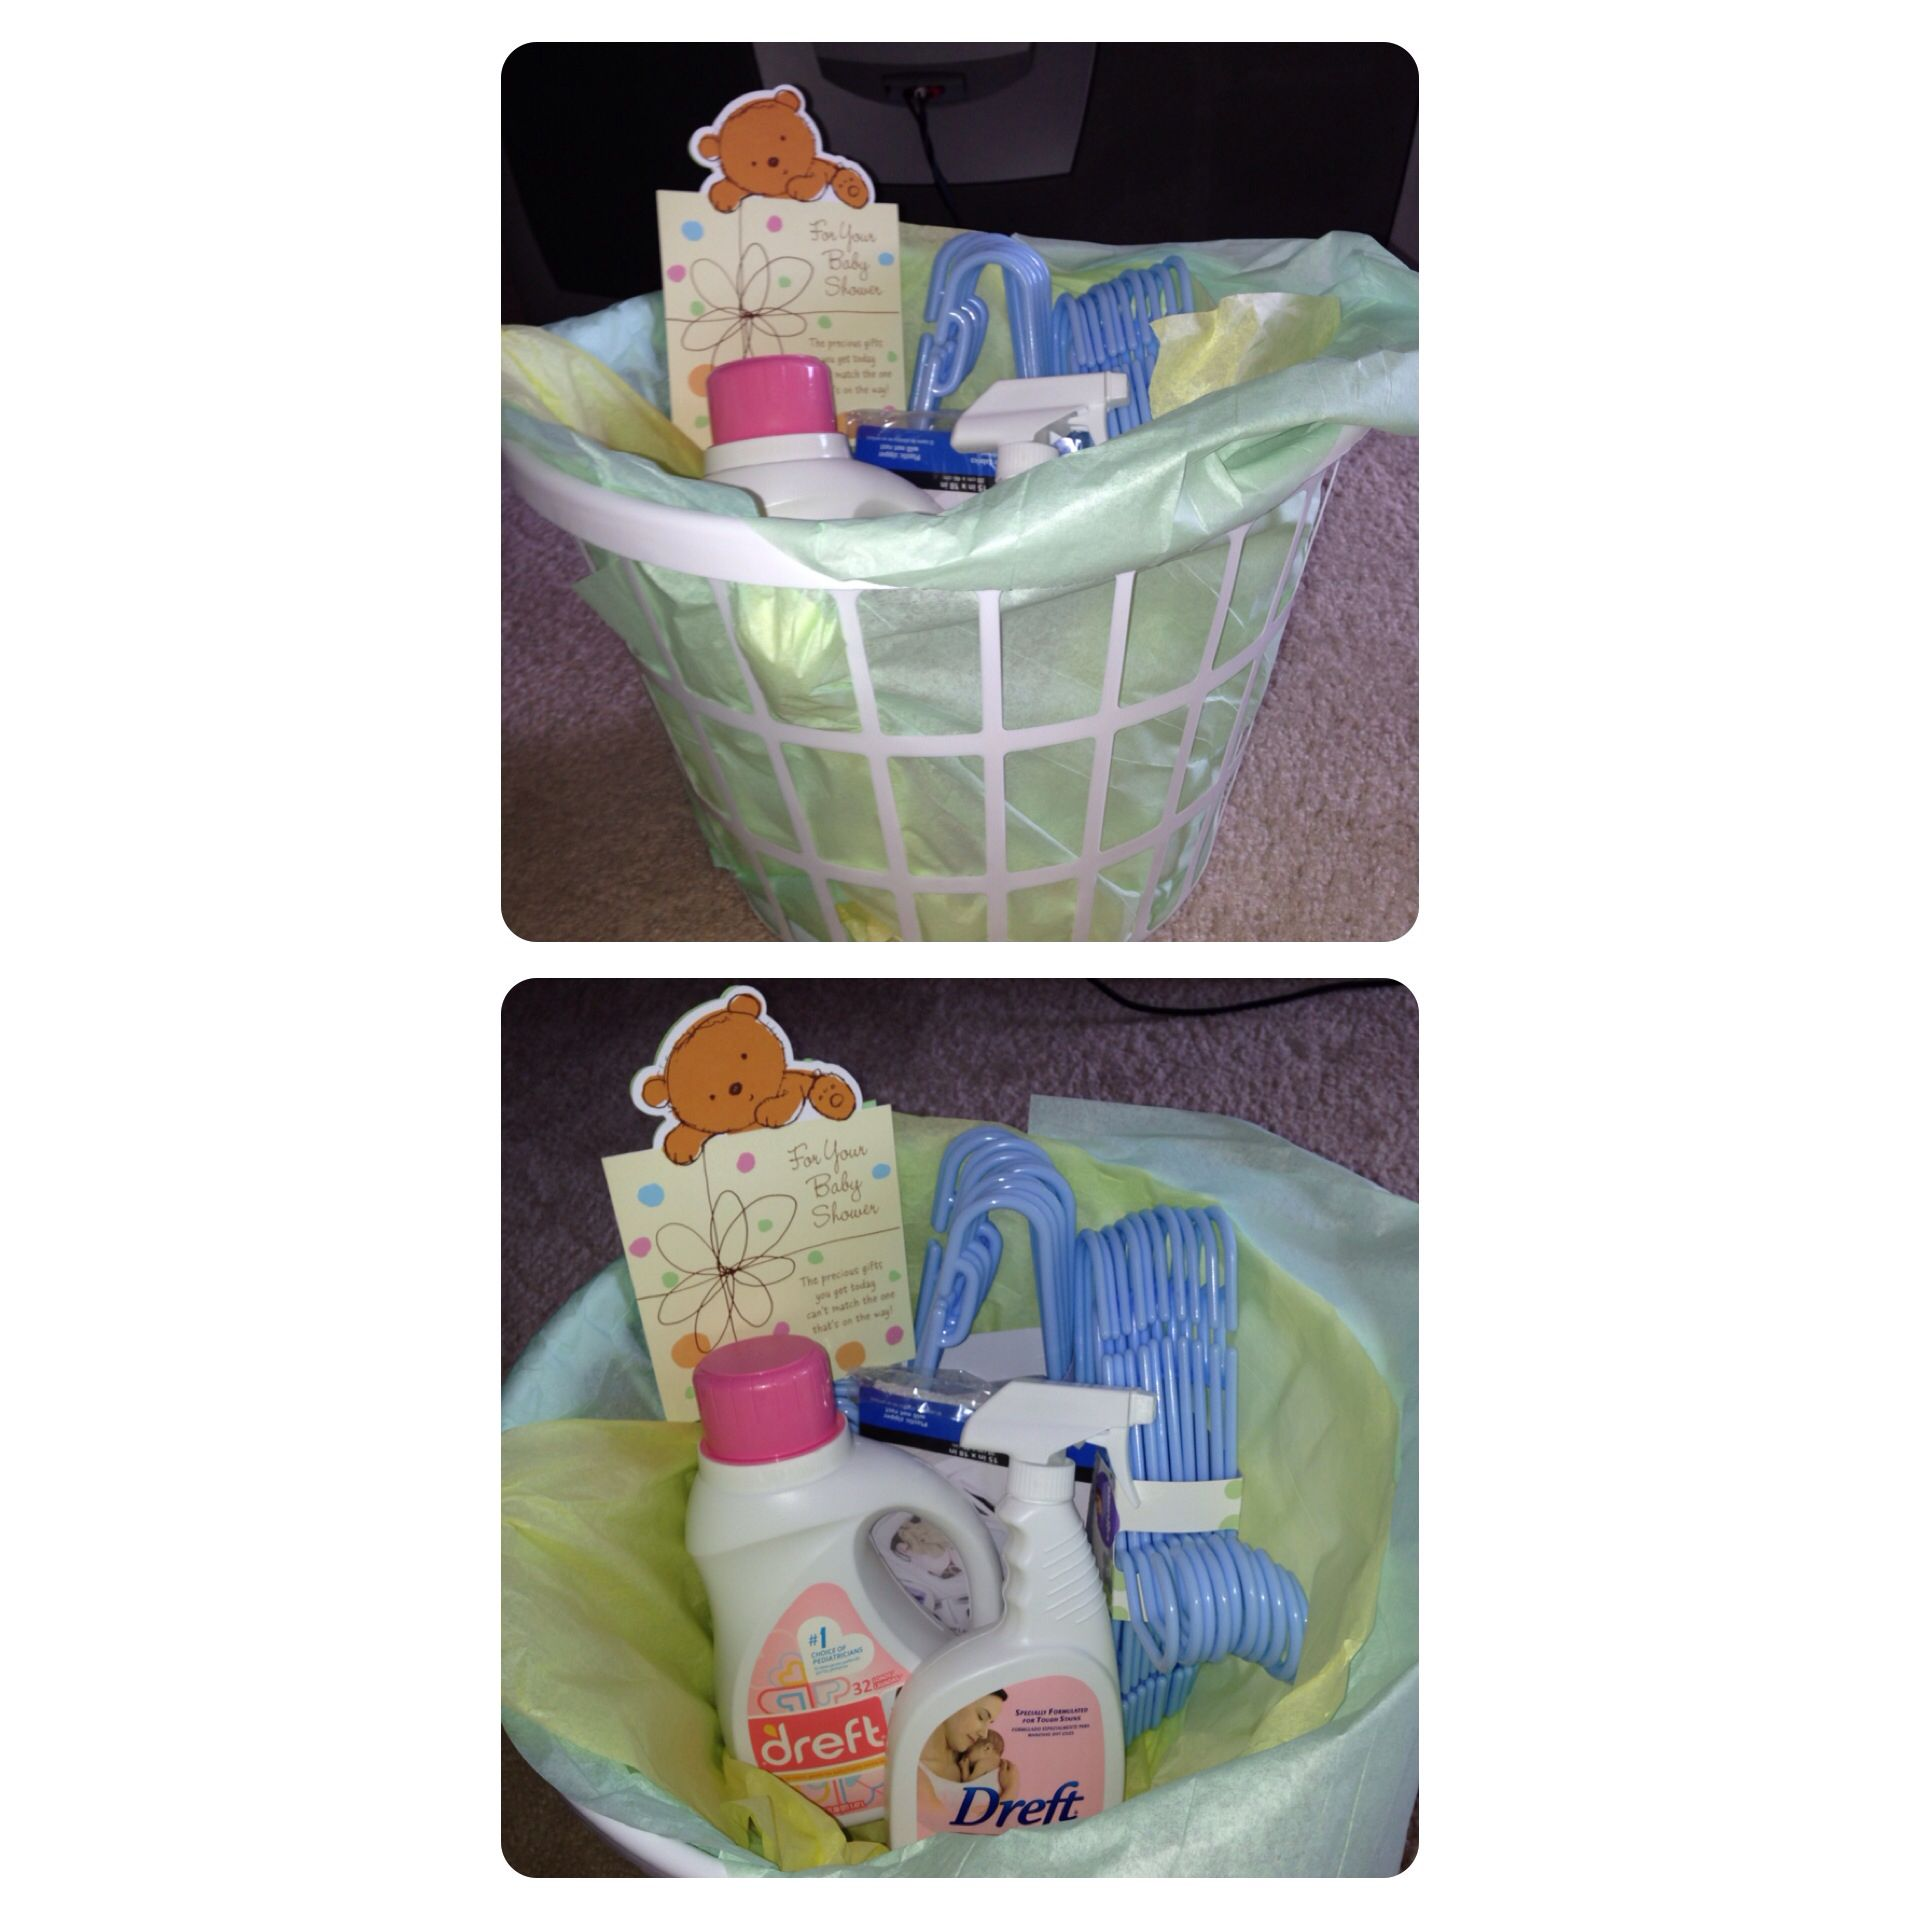 Baby Laundry Basket Gift Unique Baby Shower Gift This Is Not Something That I Have